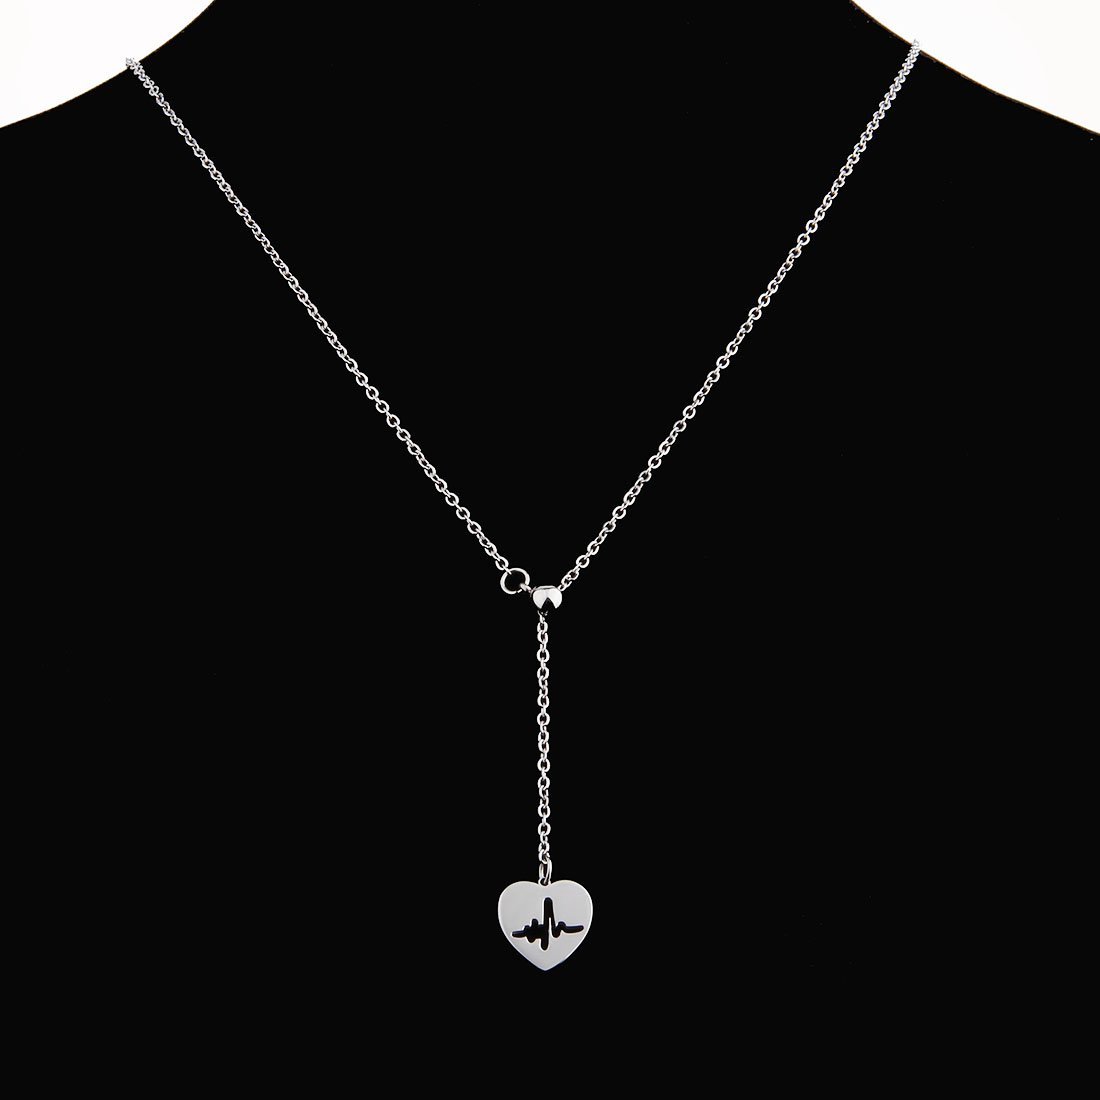 WUSUANED Heartbeat Pendant Stethoscope Nurse Hat Lariat Y Necklace for Nurse Doctor Medical Student